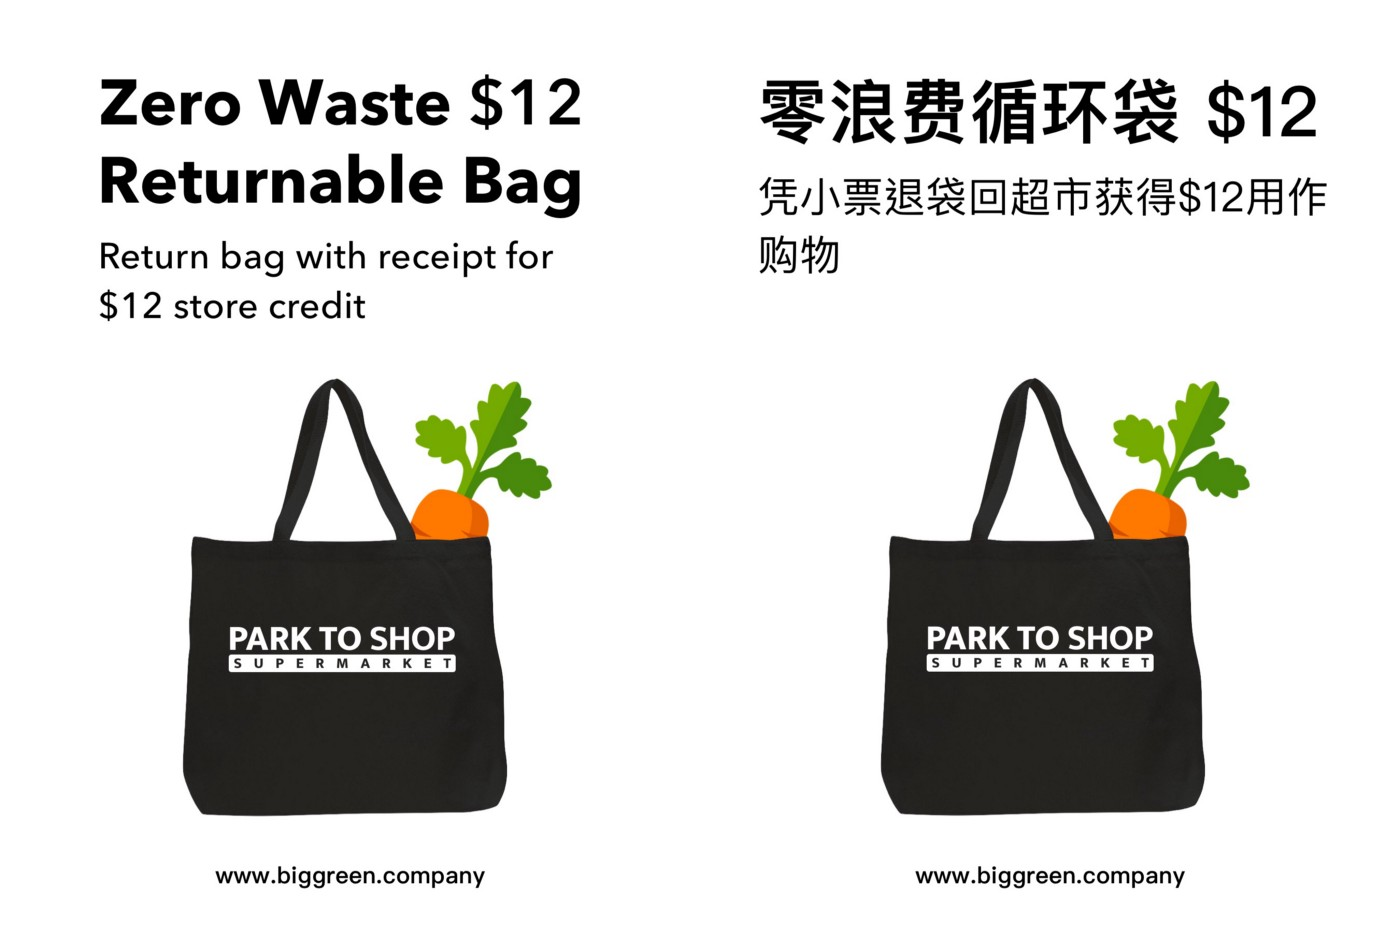 Zero Waste Bag - Return bag with receipt for full store credit